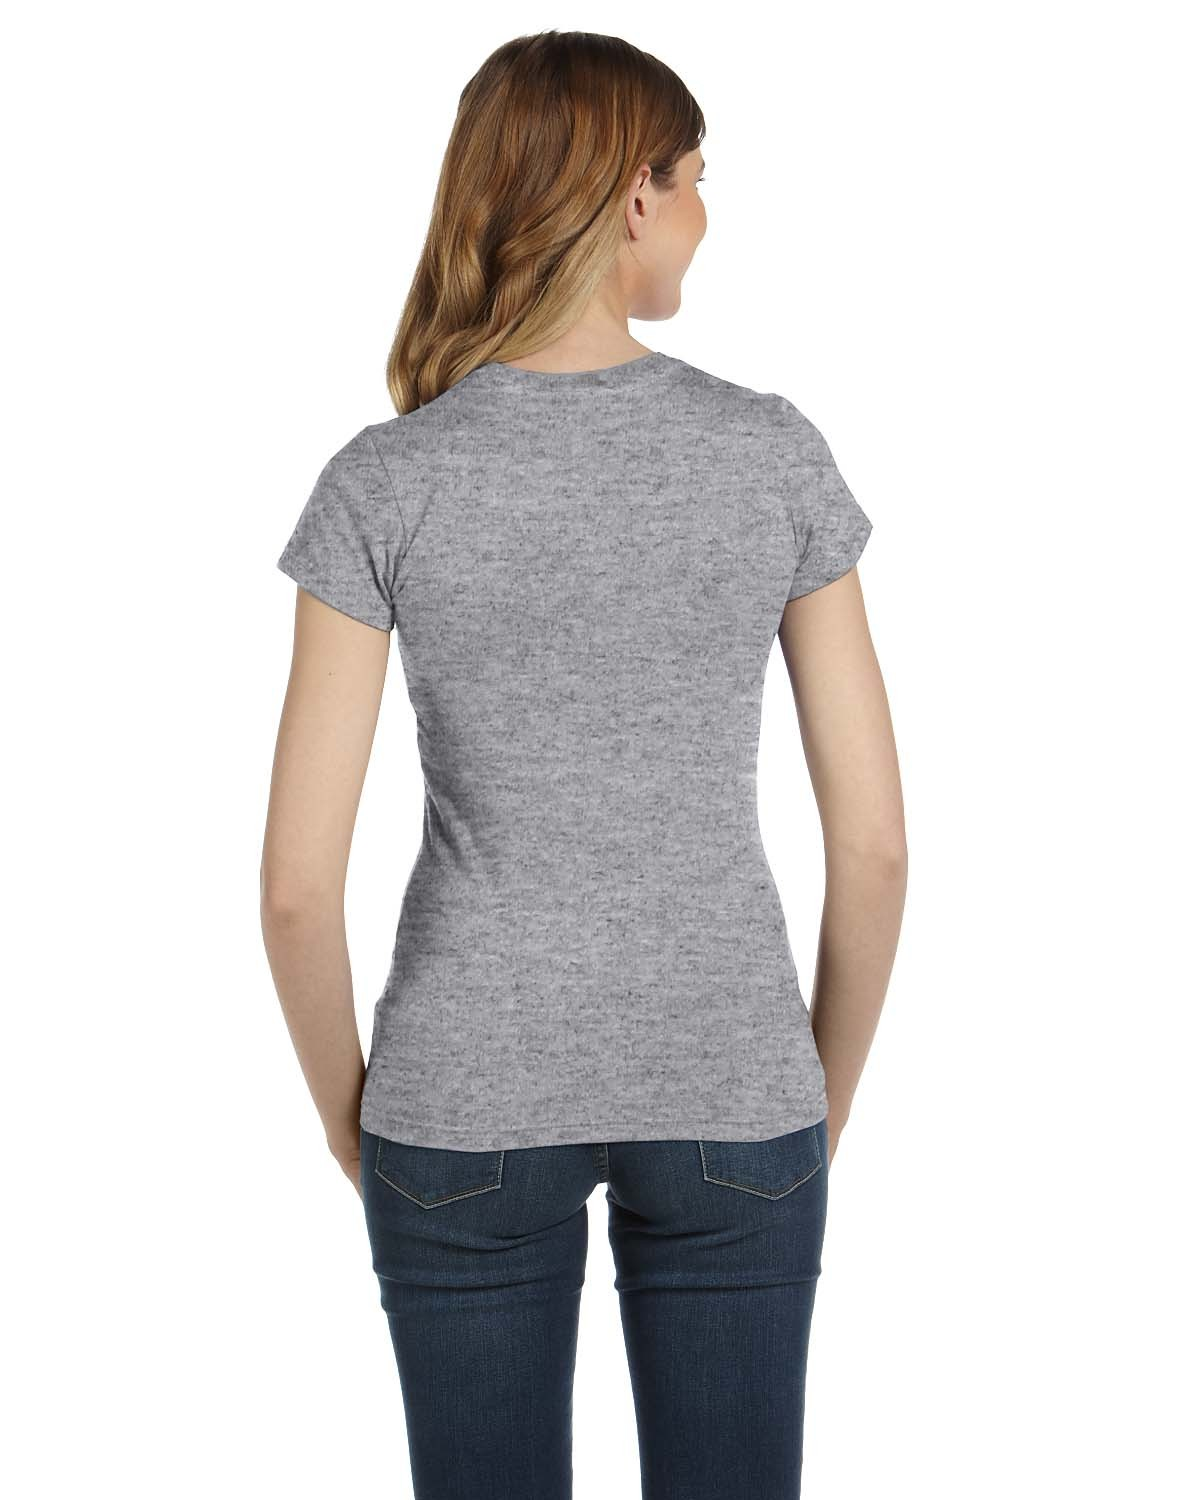 379 Anvil HEATHER GREY